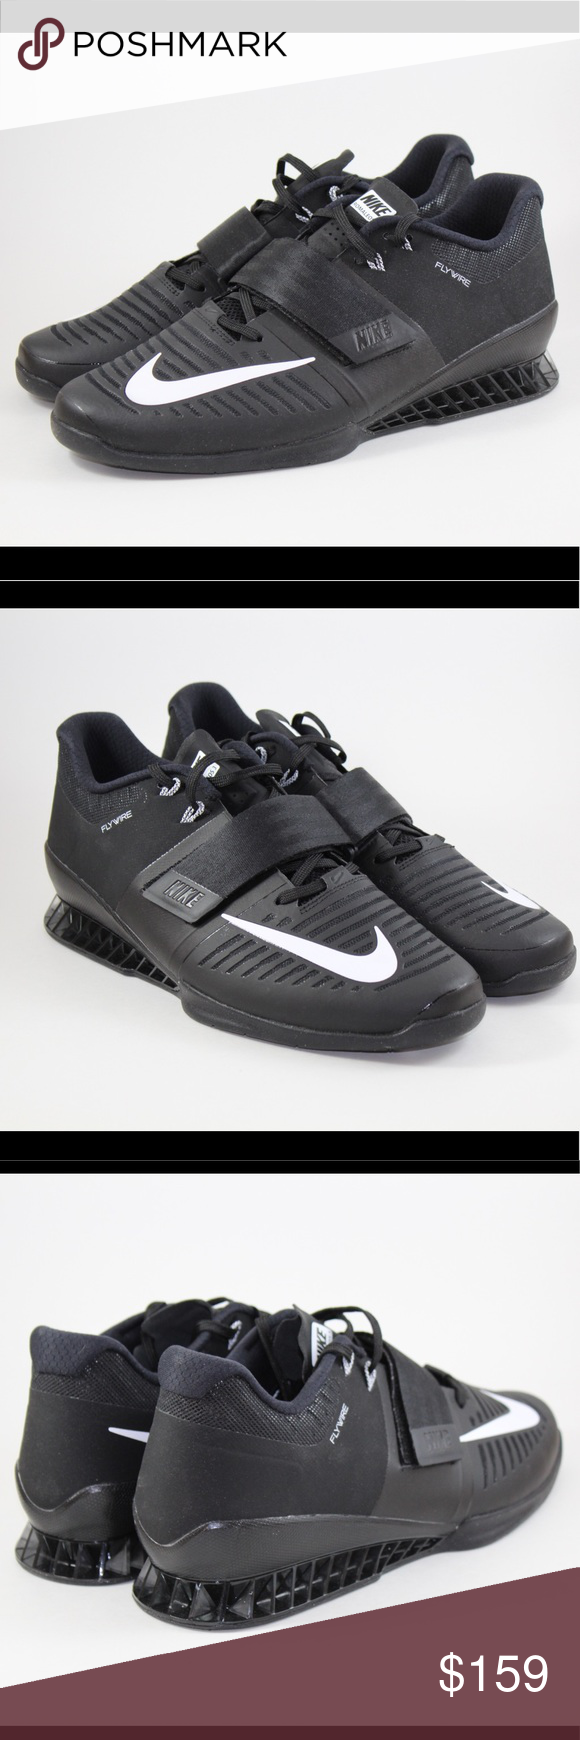 5cd0c0244928 ... Nike Romaleos 3 Weightlifting Trainer Shoe Brand New Nike Romaleos 3 Weight  lifting Shoe Black white ...